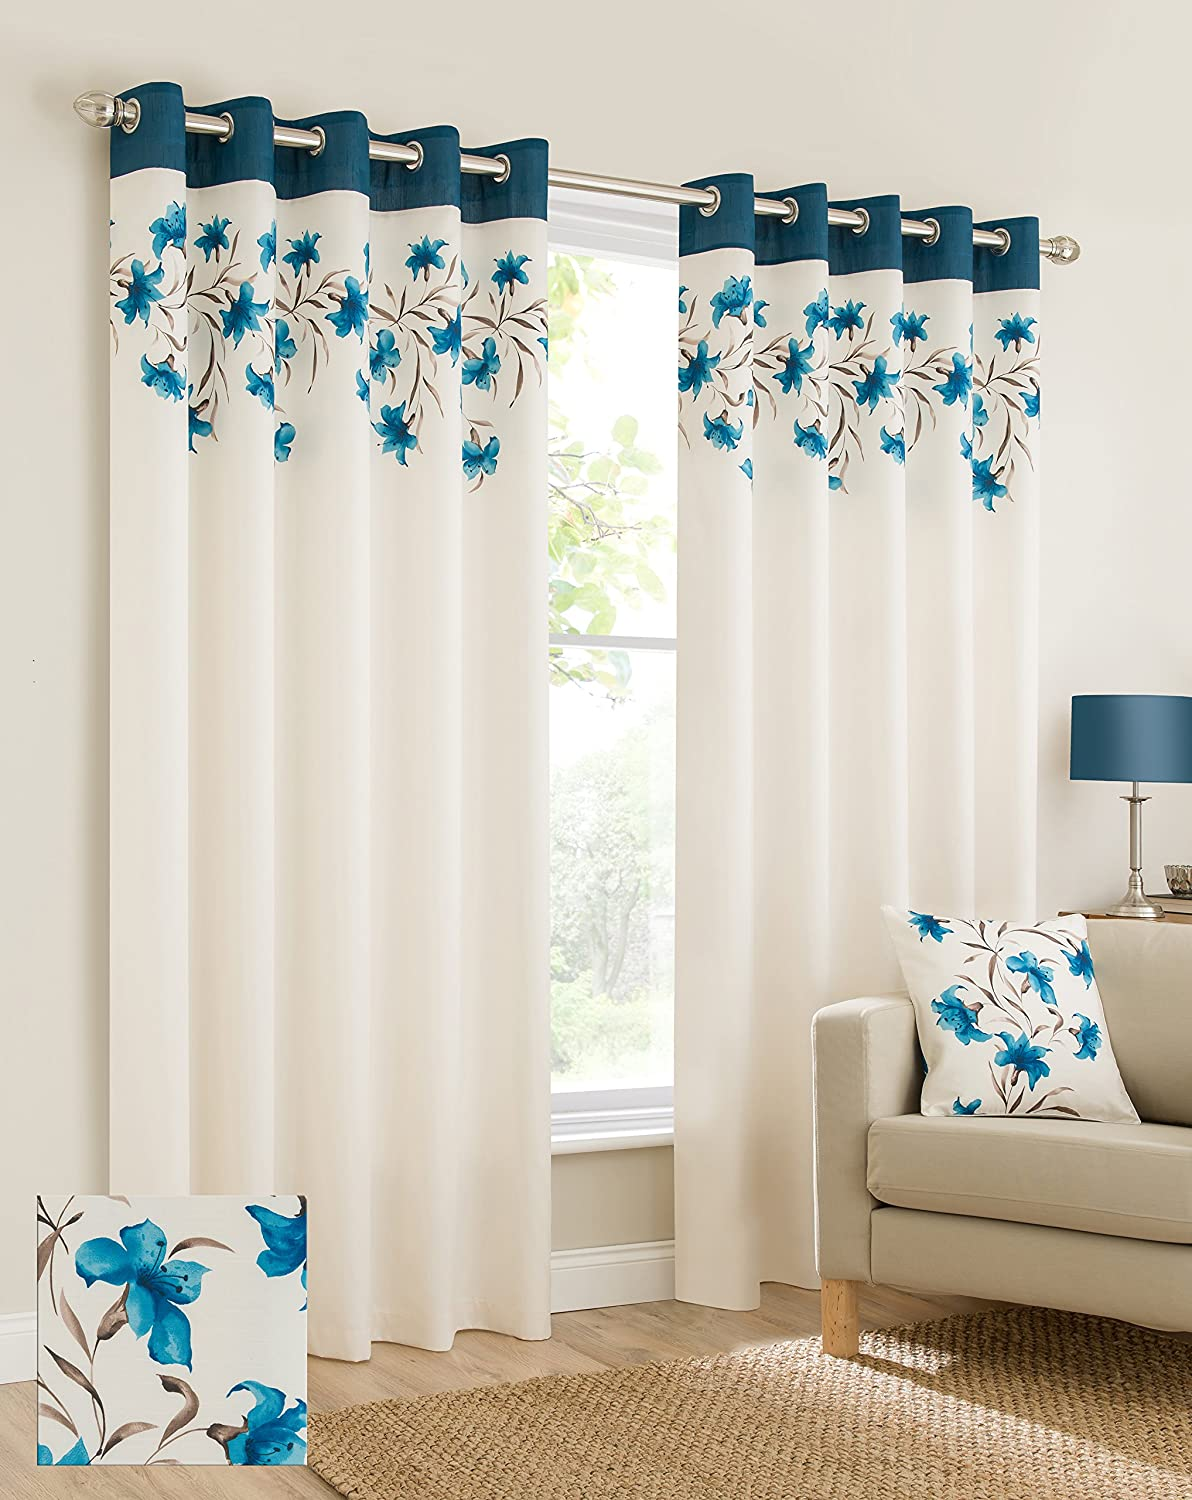 Plain Faux Silk Look Eyelet Ring Top Teal Blue Cream Brown Fully Lined  Curtains Lily Flowers Floral Leaves 46x54 Inches 117cmx137cm Drop Eyelet  Ring Top ...